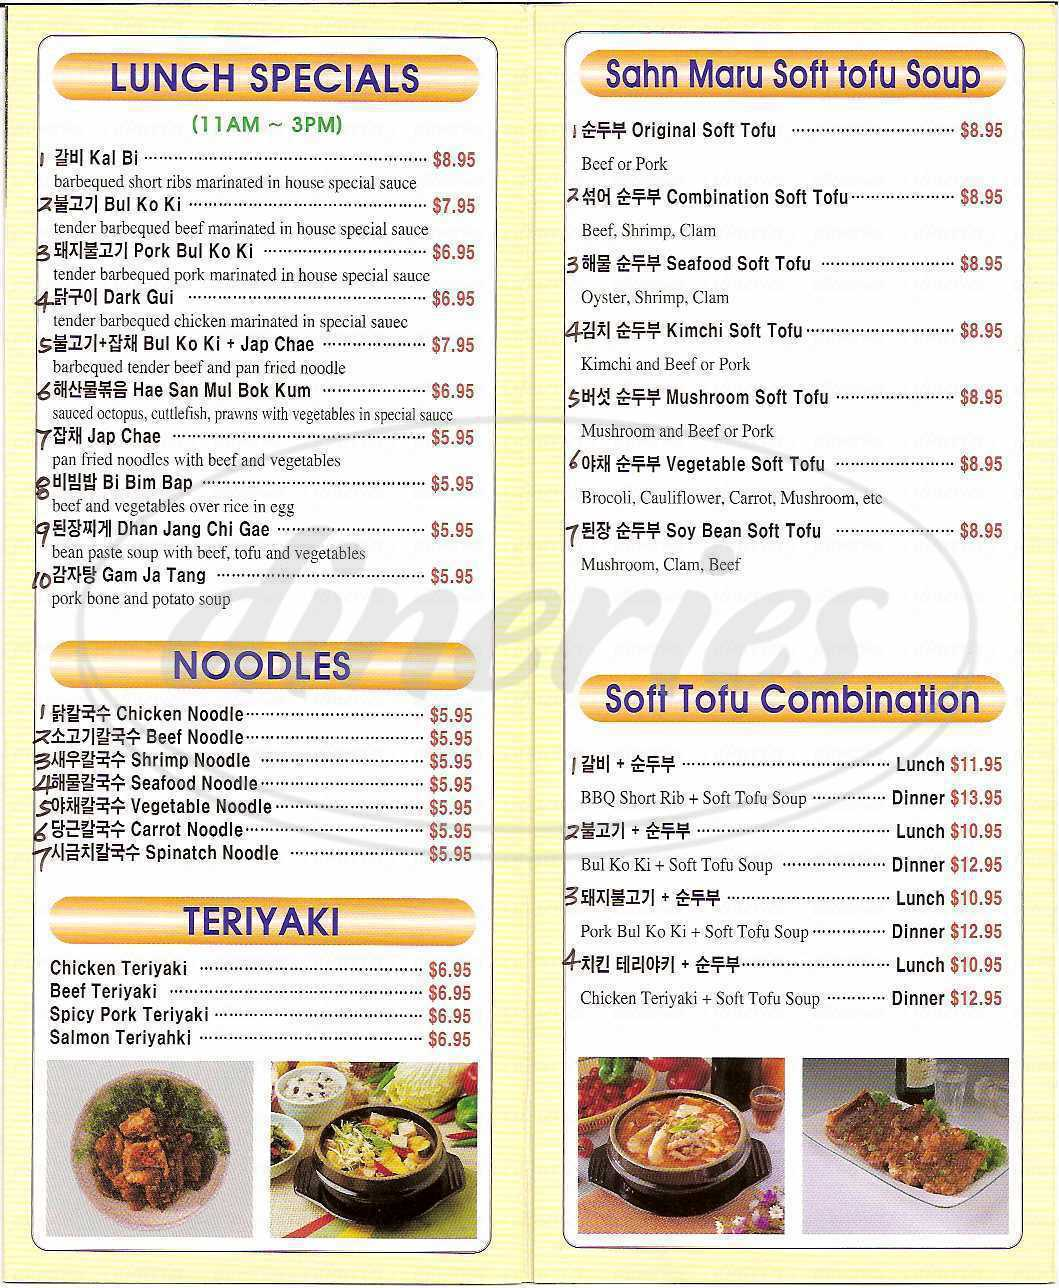 menu for Sahn Maru